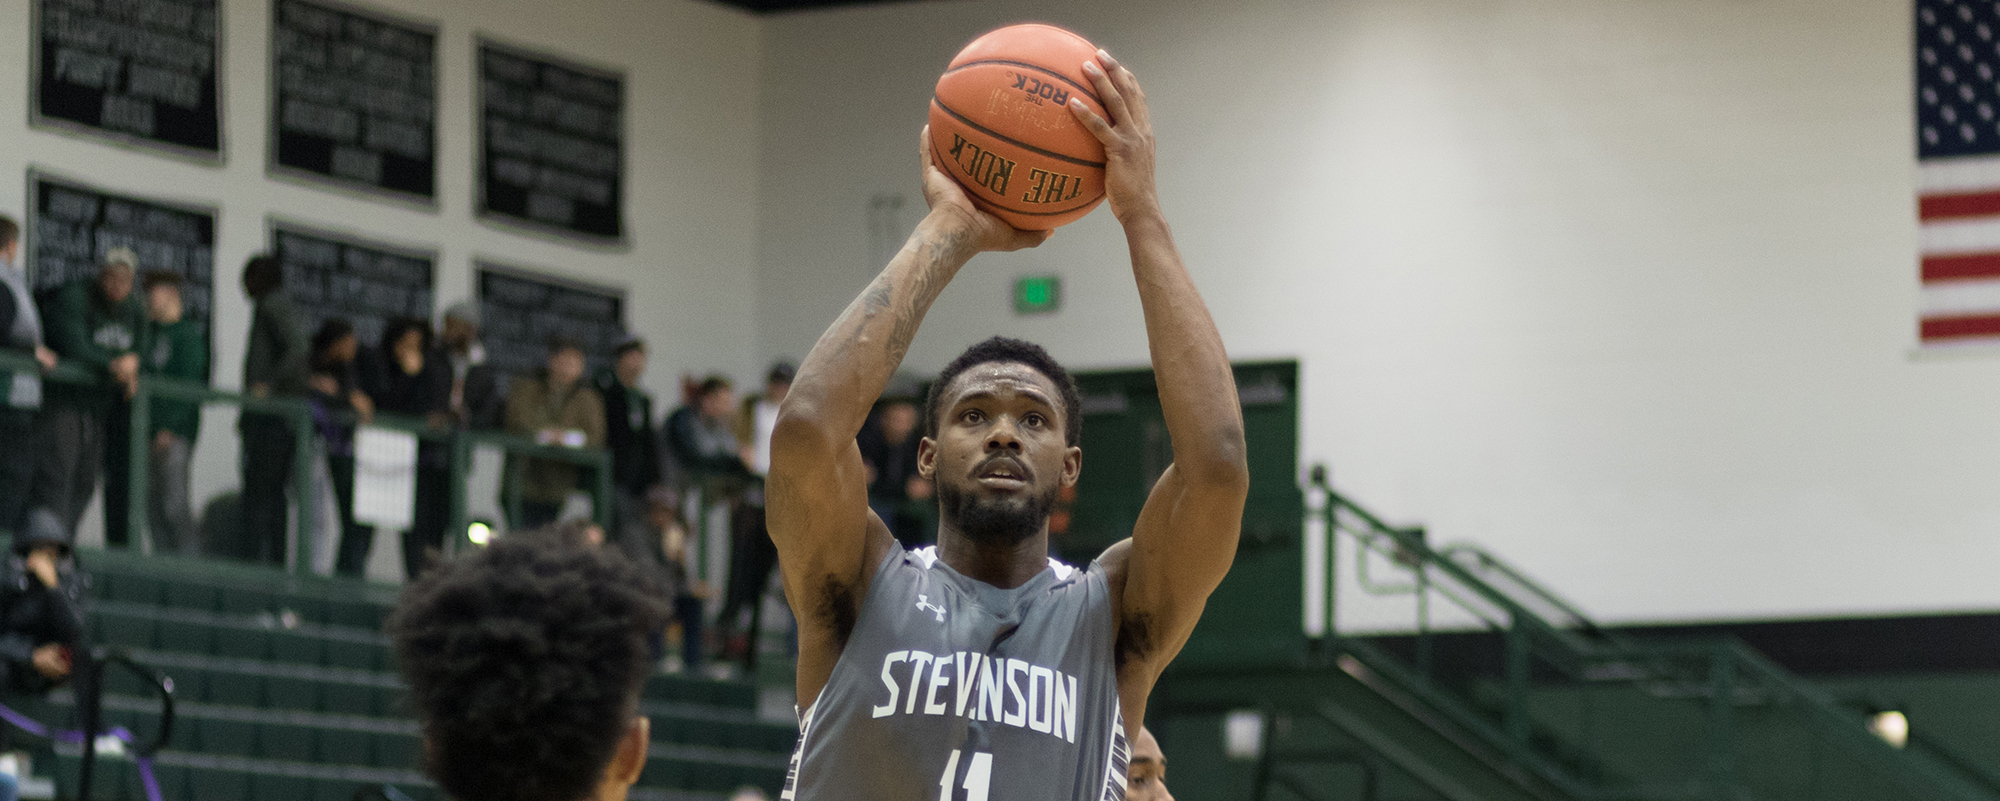 Mustangs Close Out Season at Alvernia Tuesday